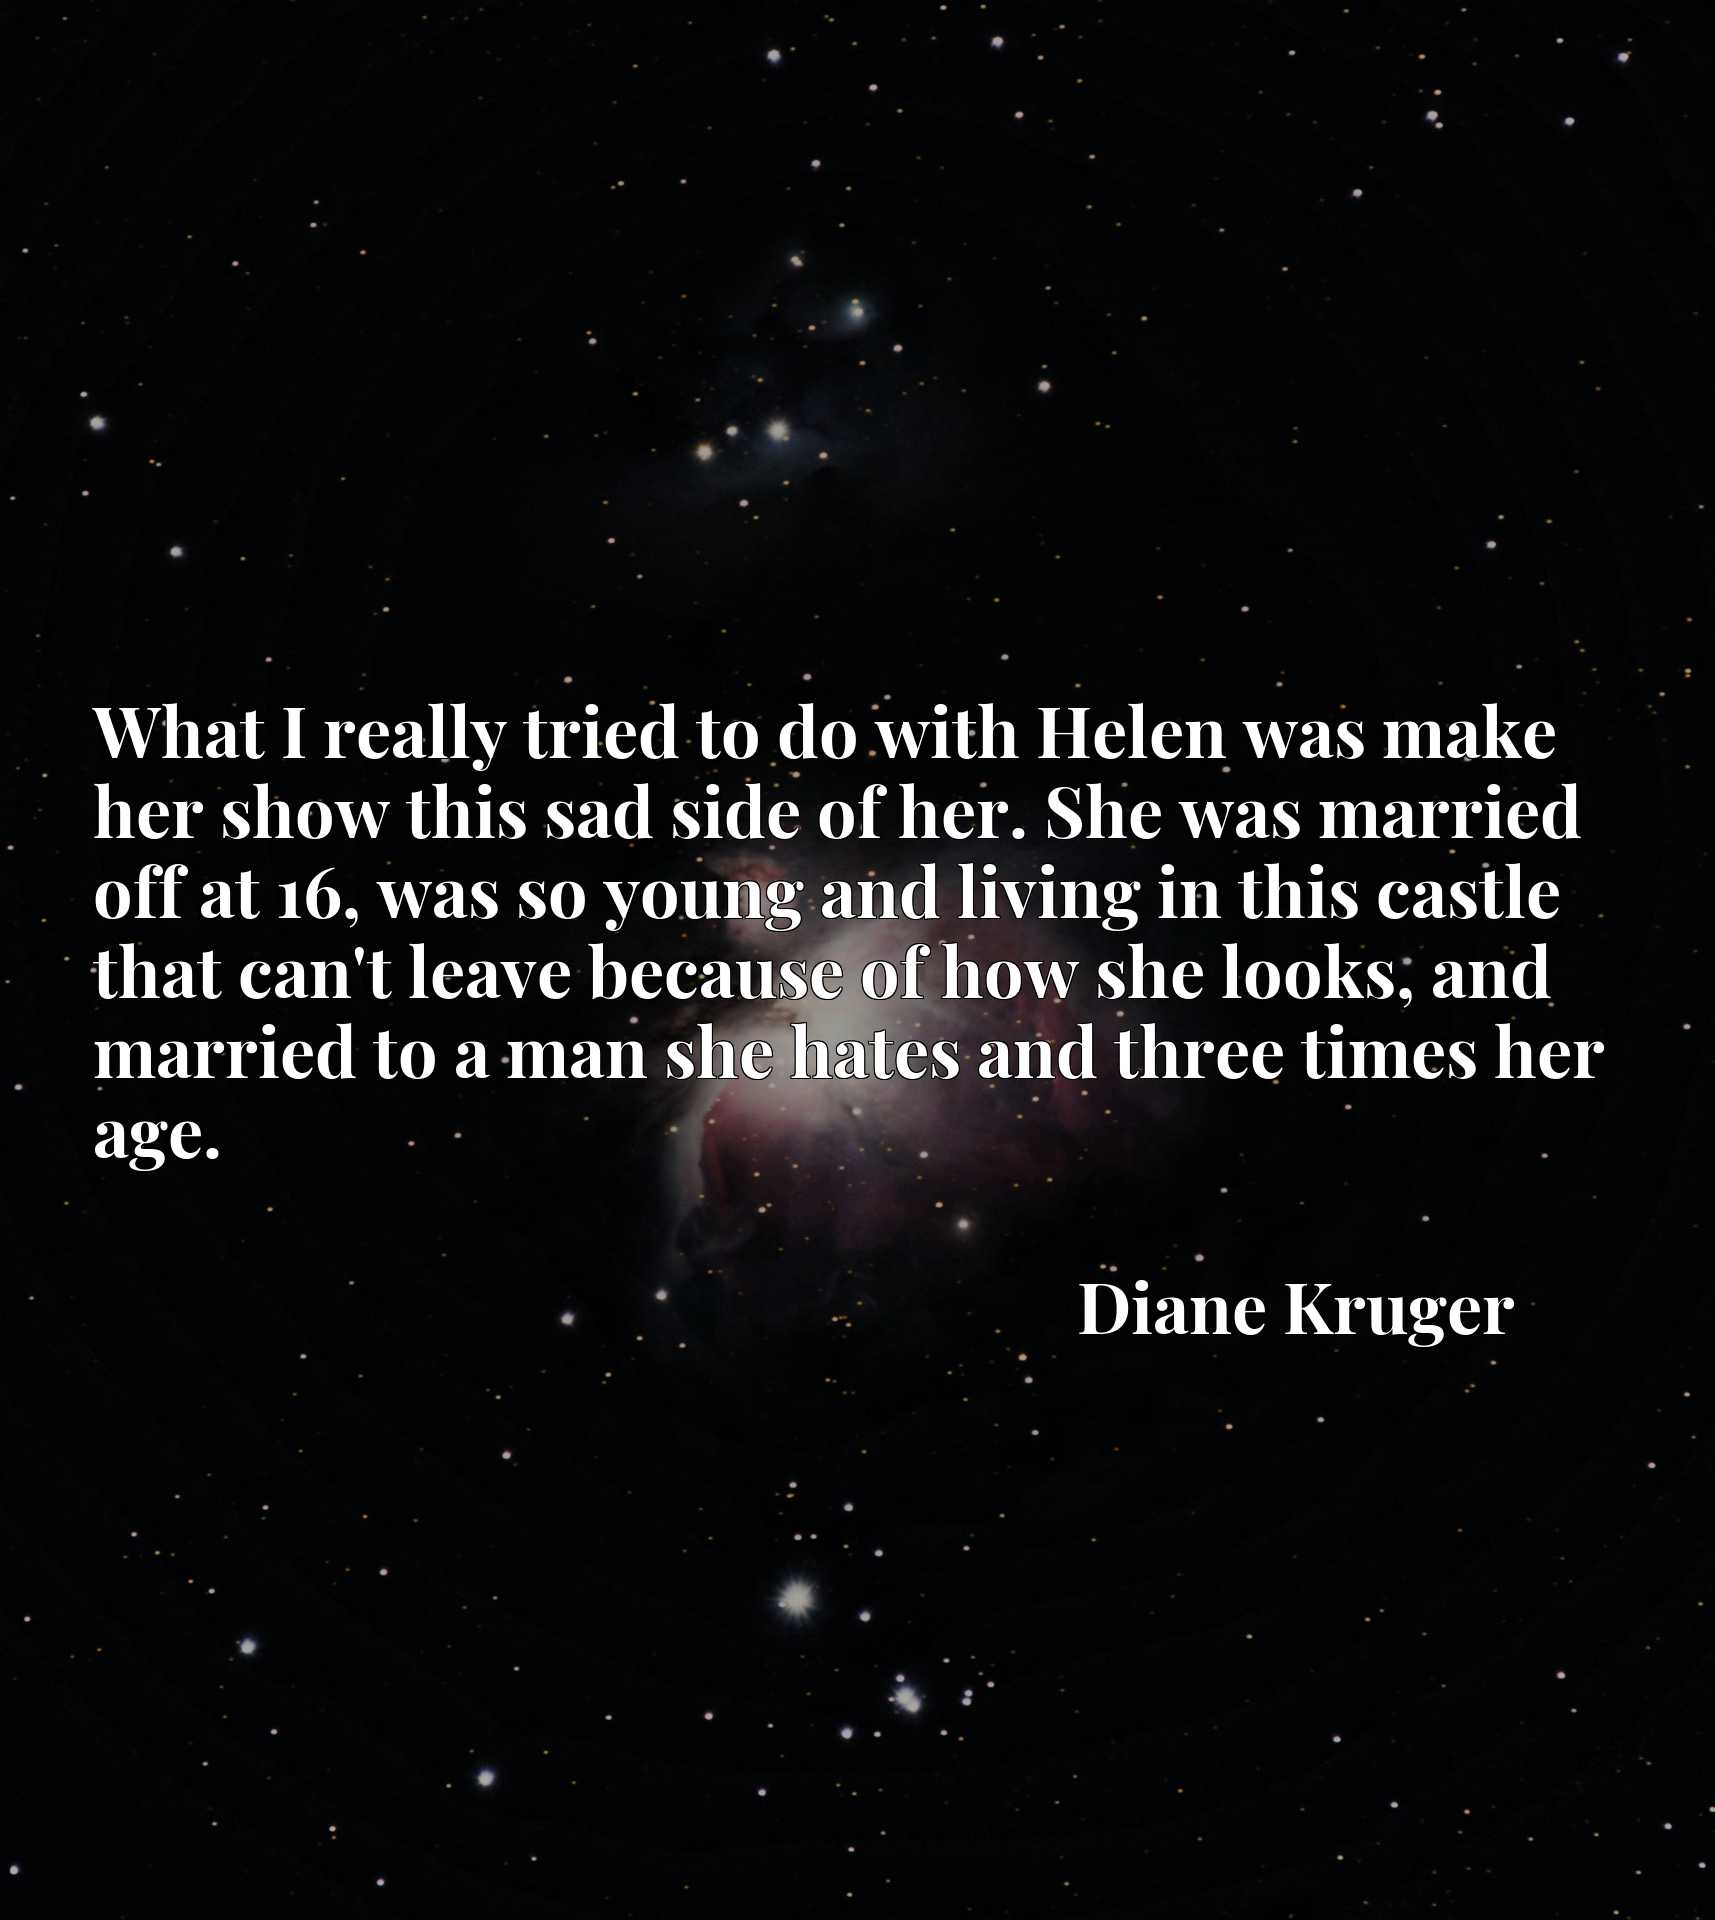 What I really tried to do with Helen was make her show this sad side of her. She was married off at 16, was so young and living in this castle that can't leave because of how she looks, and married to a man she hates and three times her age.